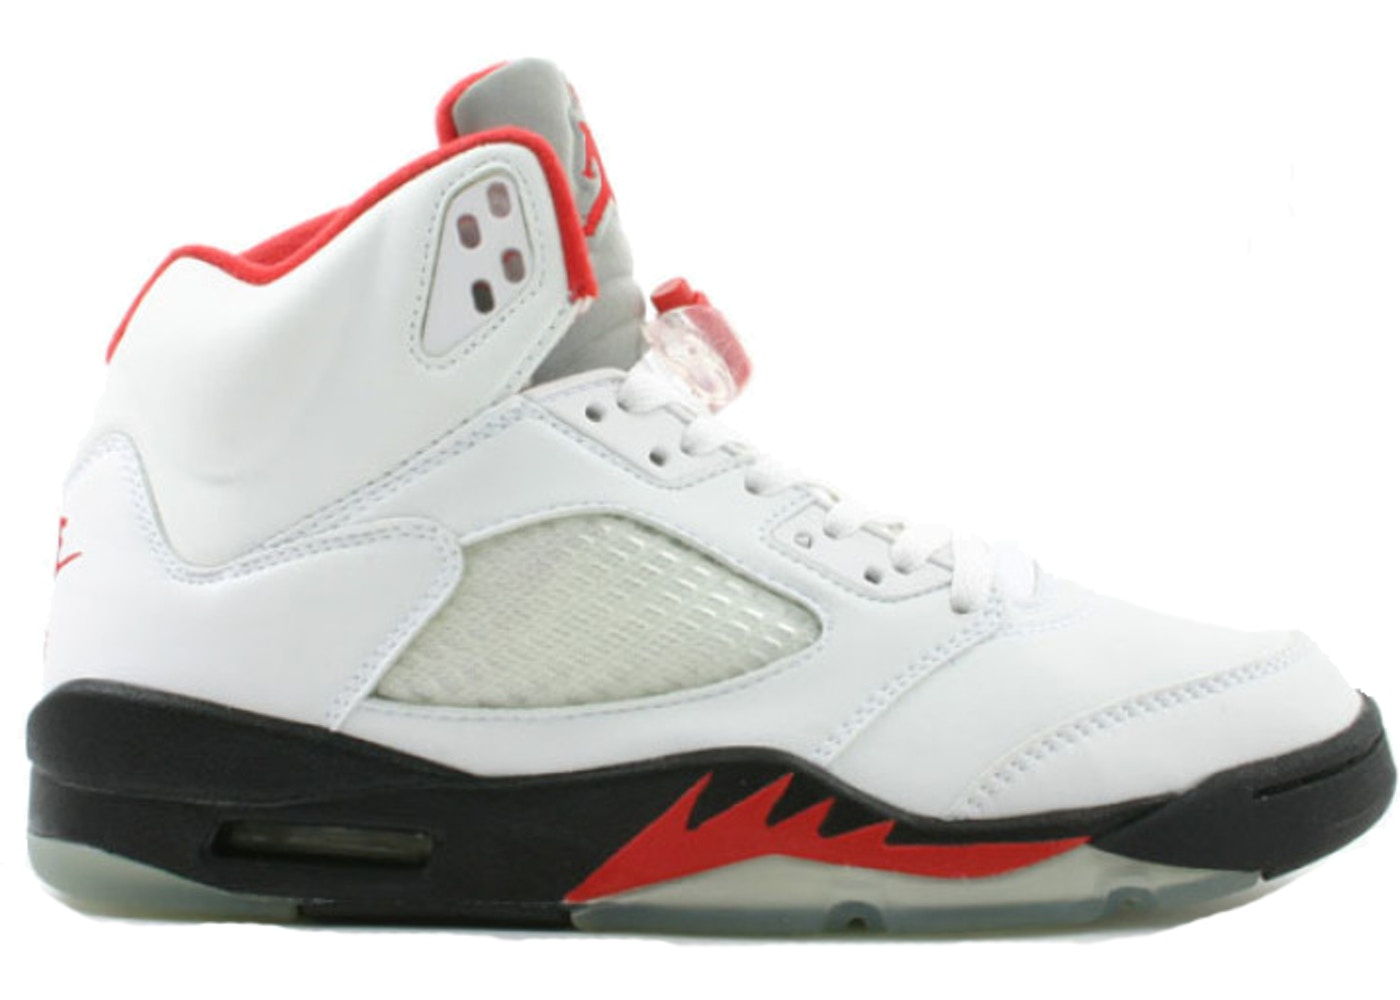 7c7bdca05cb2 Air Jordan 5 Shoes - Average Sale Price